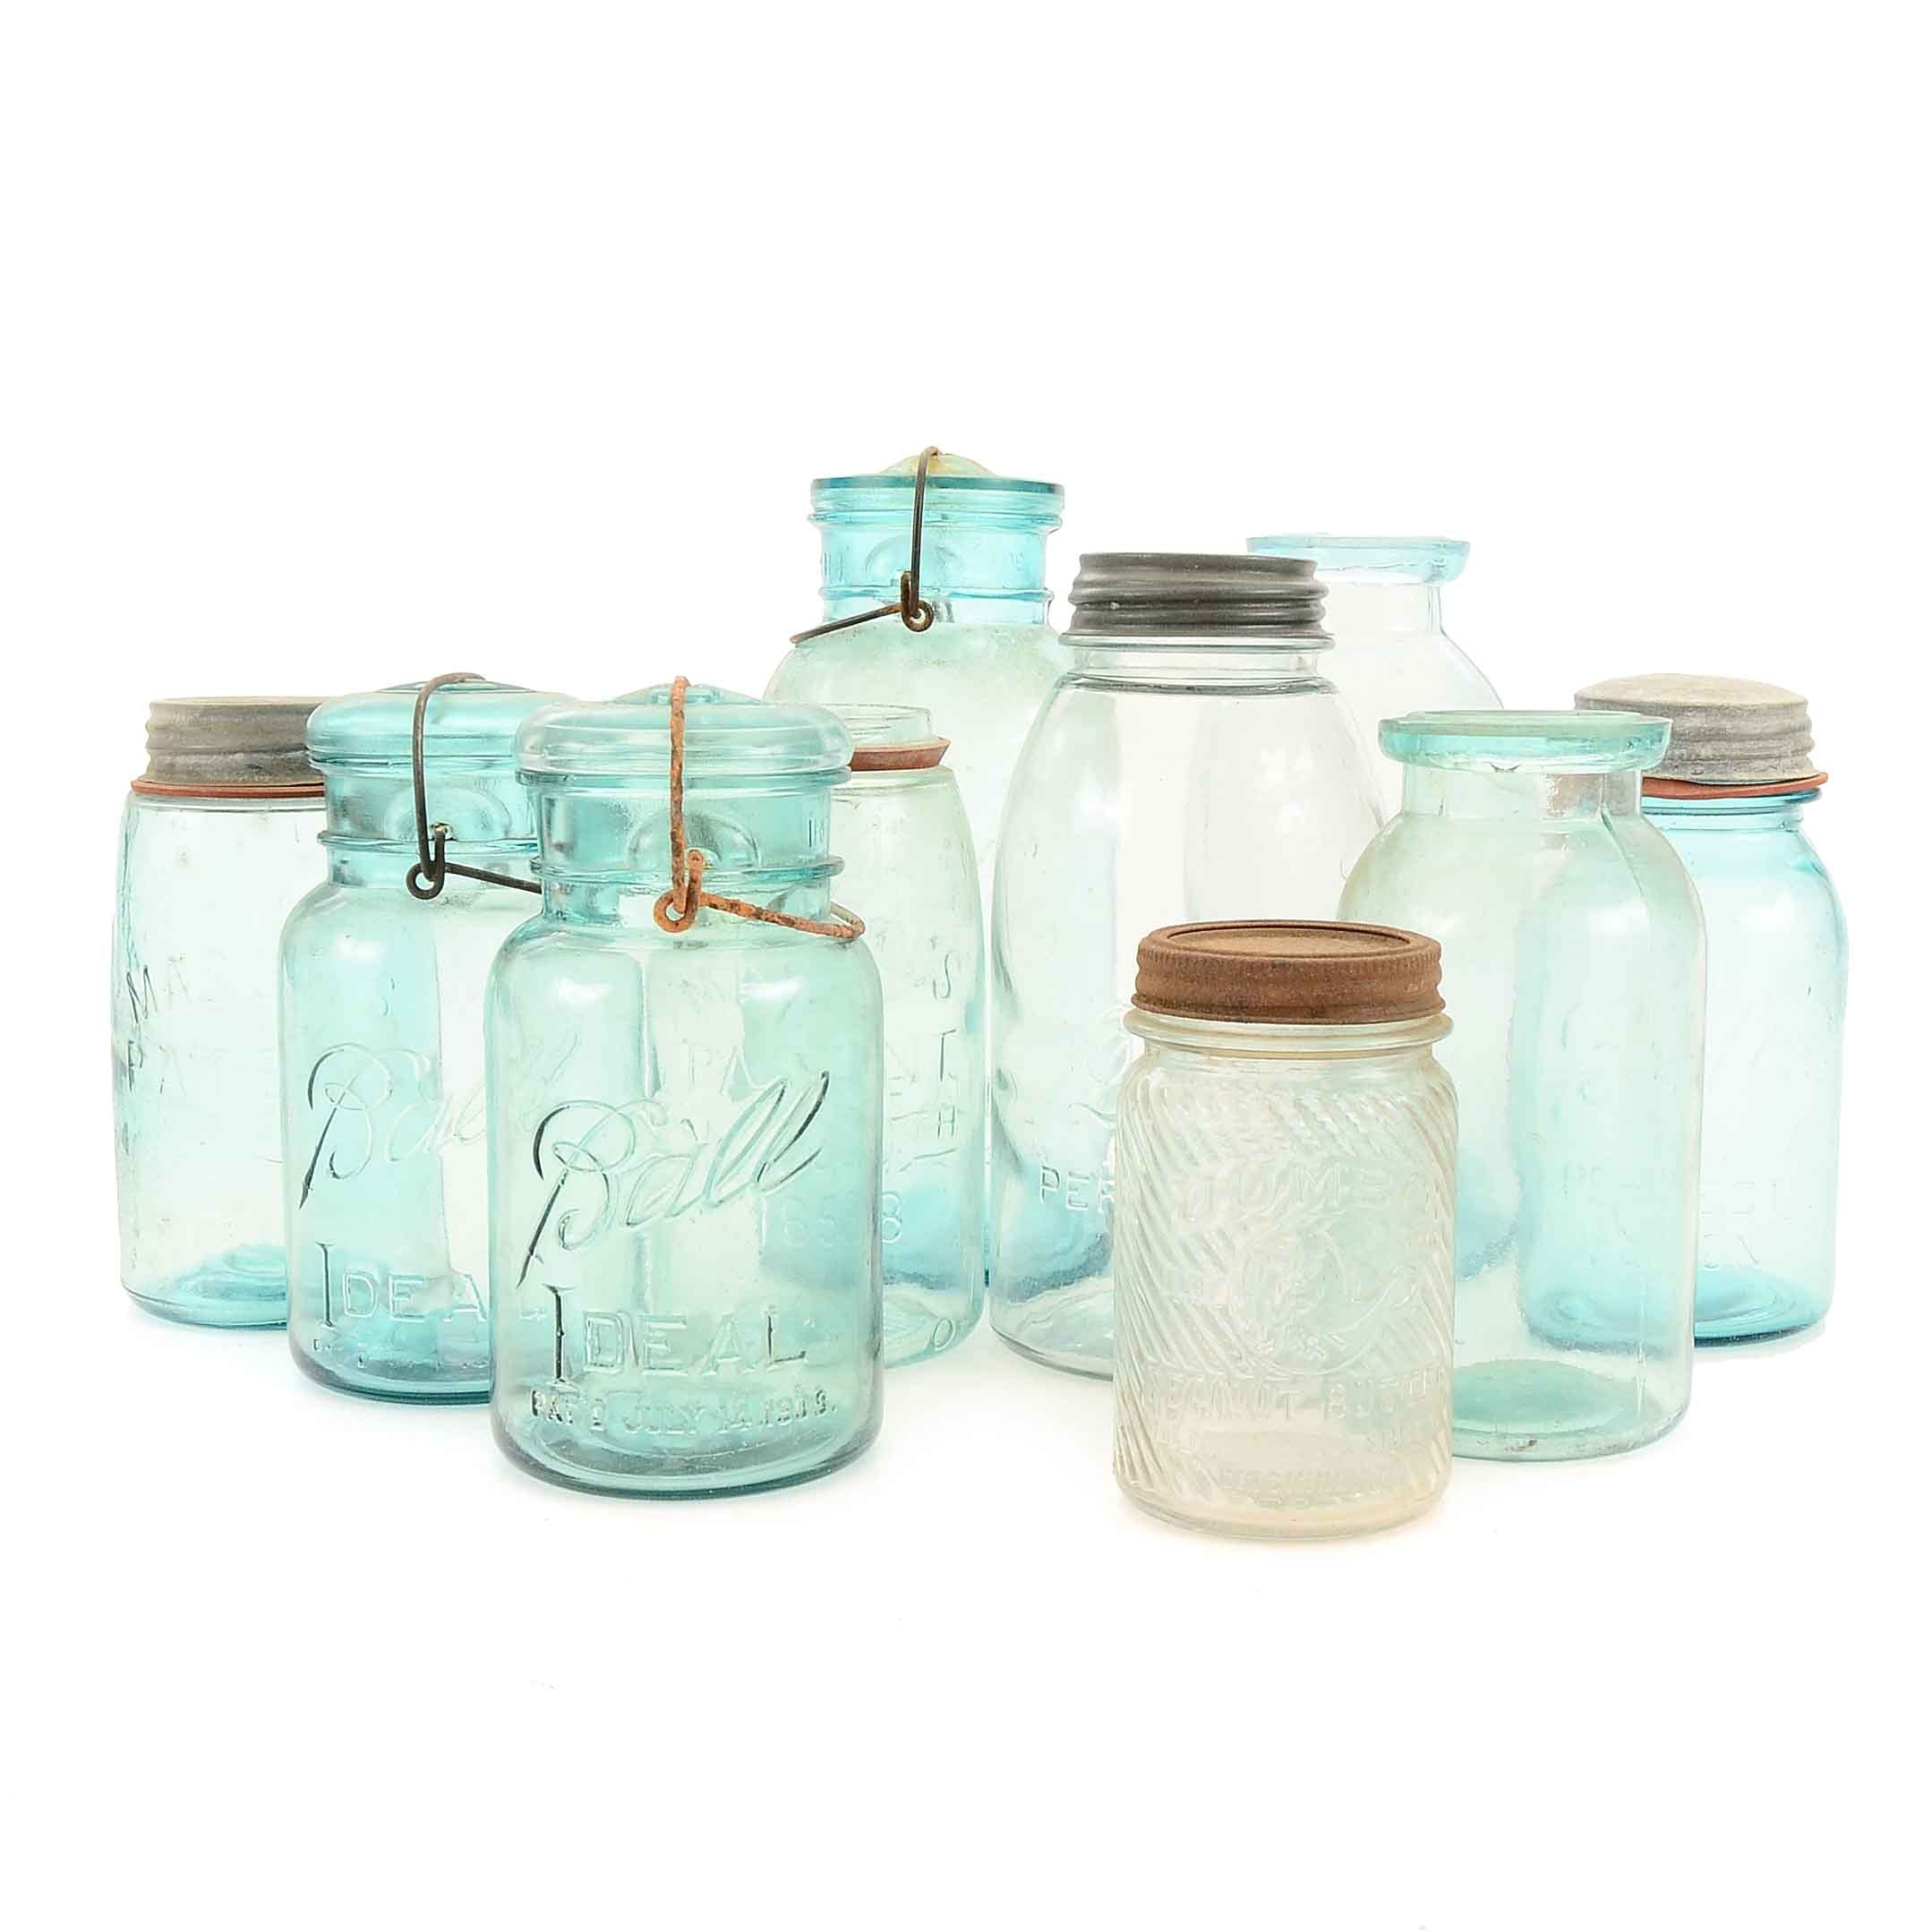 Collection of Decorative Jars